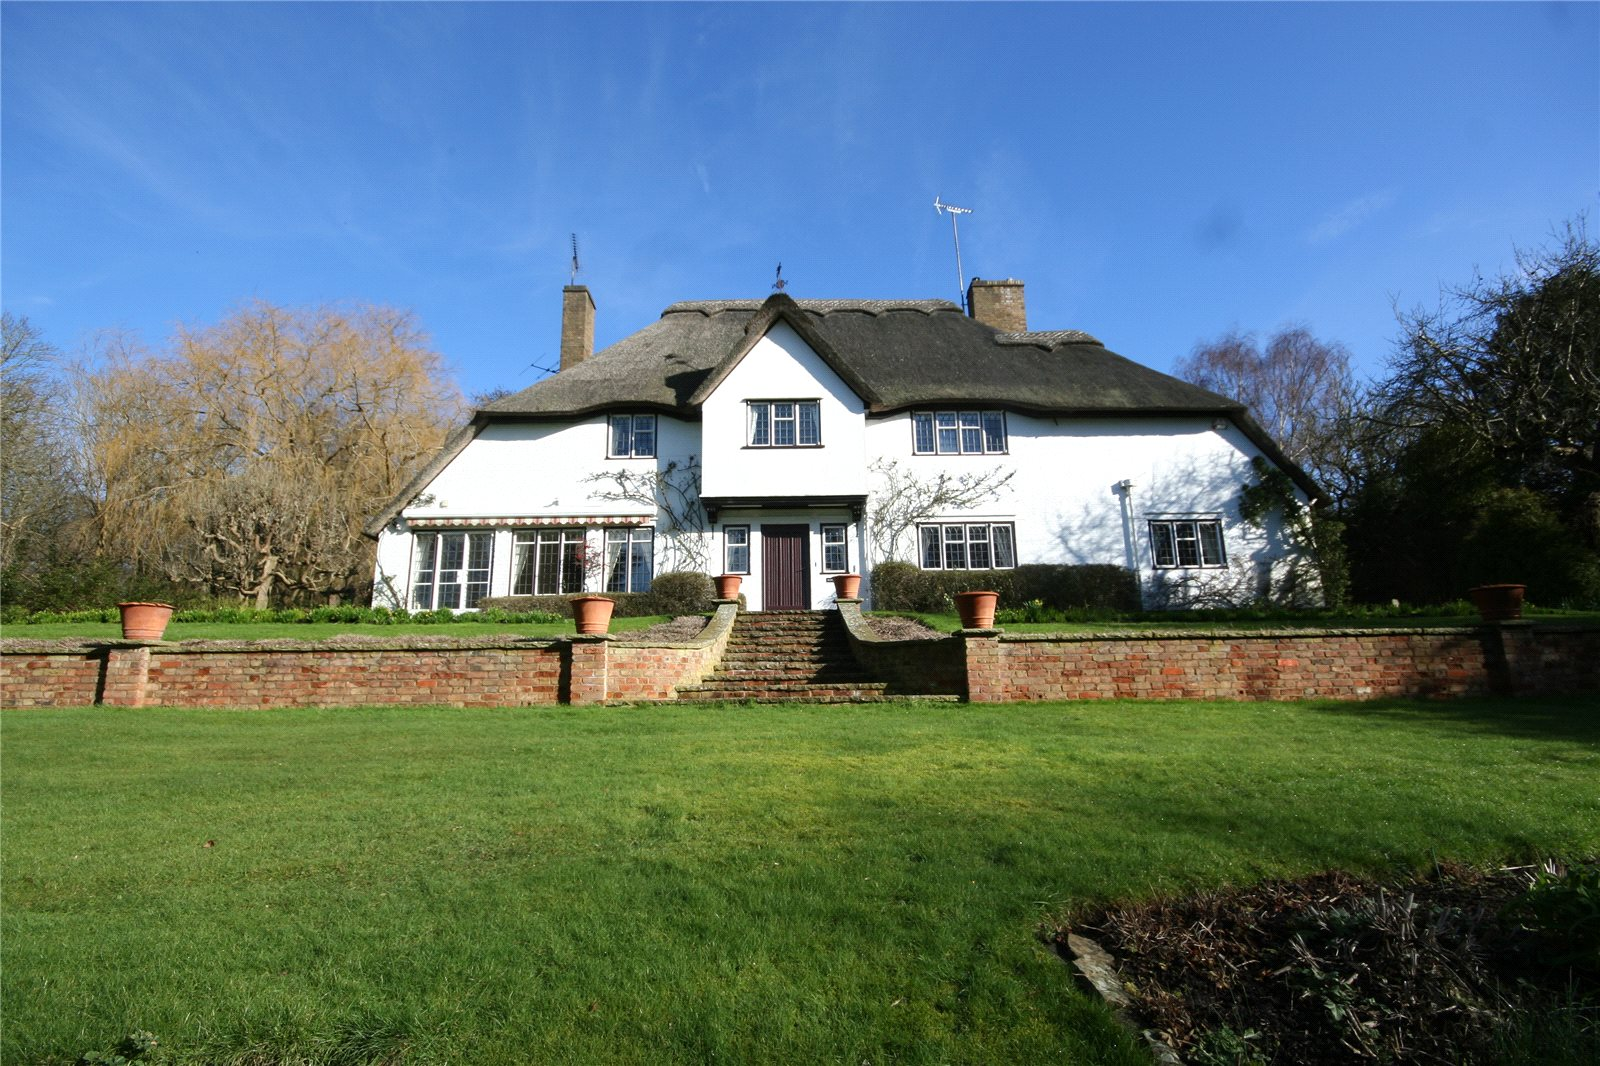 Частный дом для того Продажа на Hedgerley Lane, Gerrards Cross, Buckinghamshire, SL9 Gerrards Cross, Англия